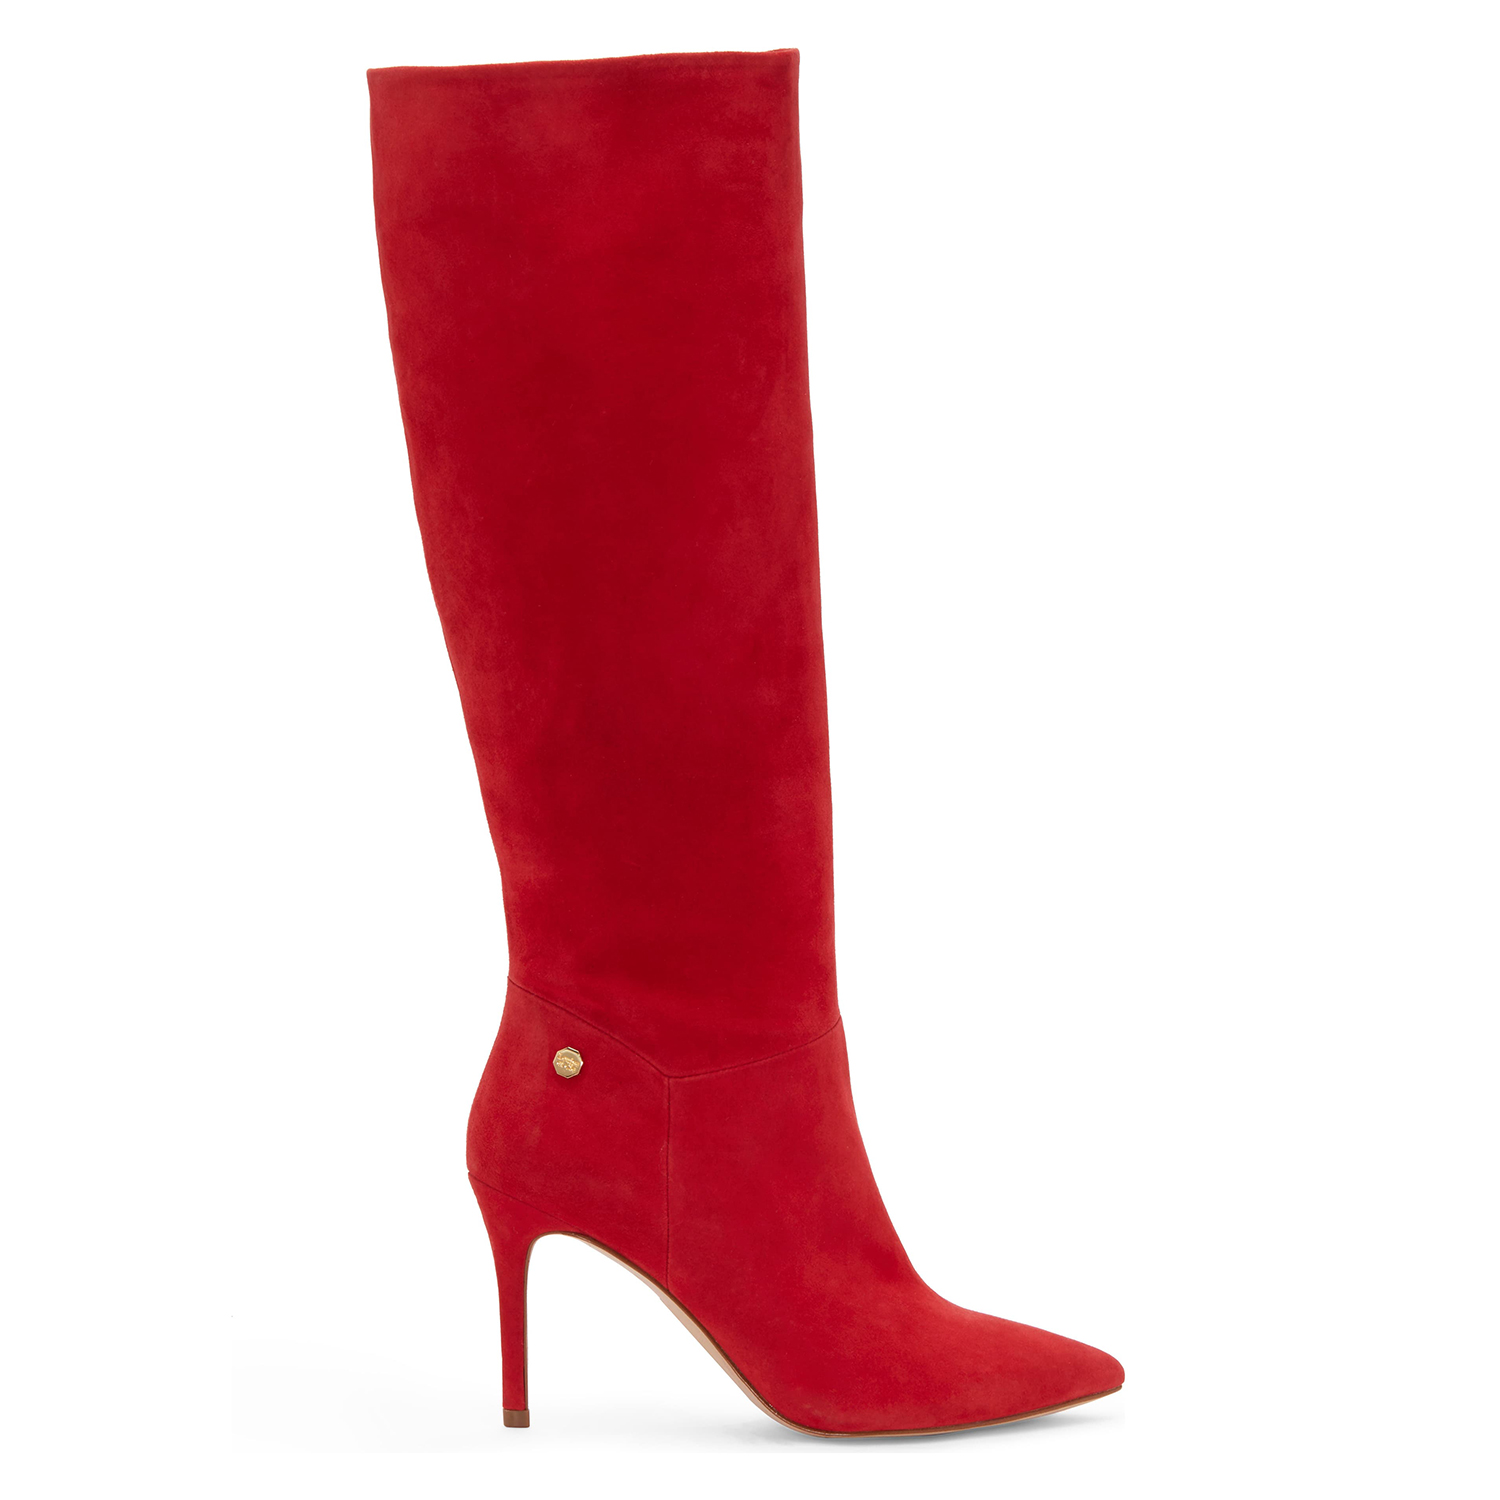 Louise et Cie Sevita Tall Boot Pomegranate Suede